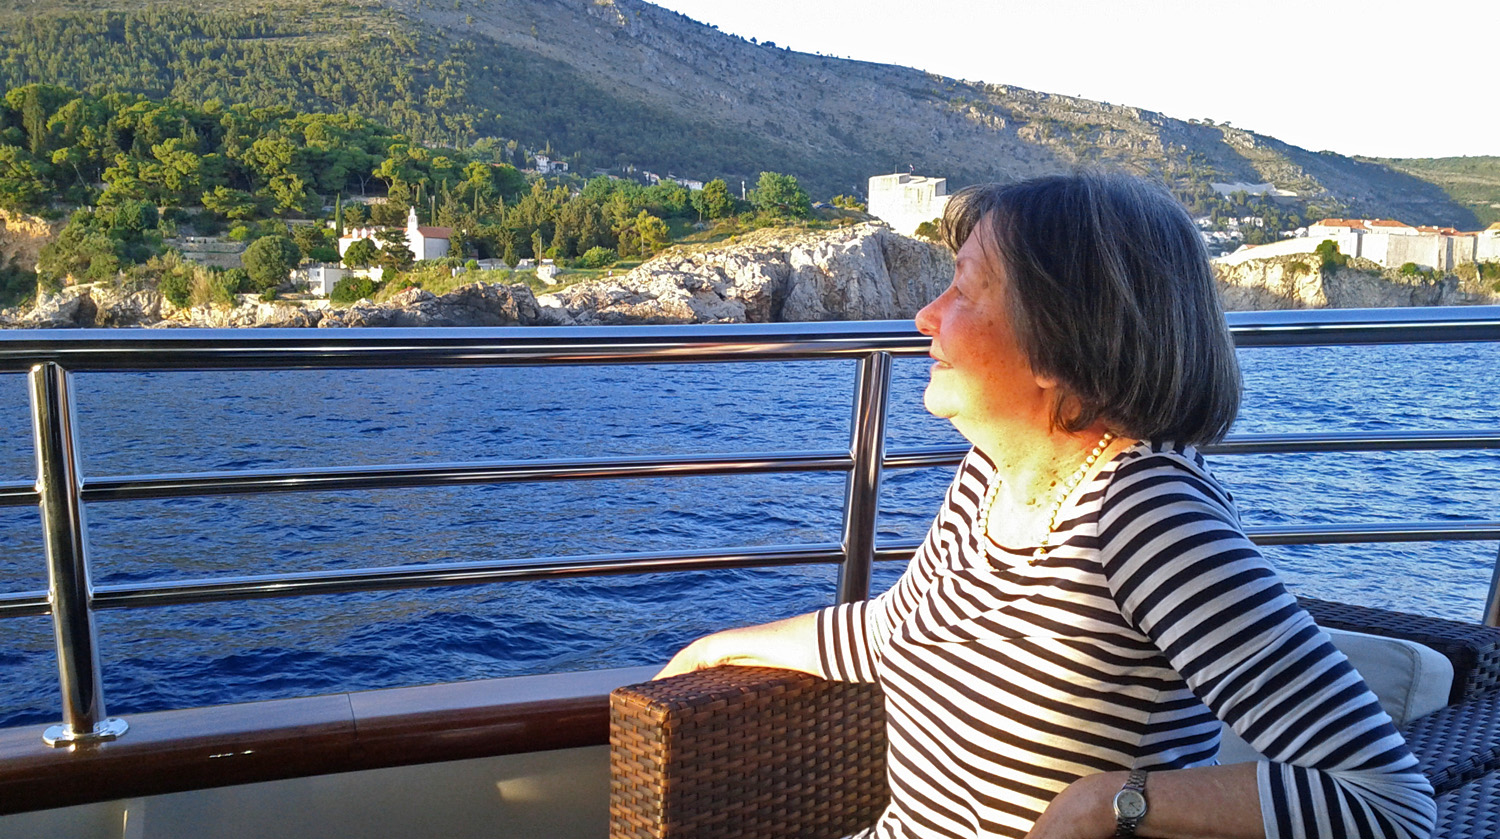 Maja Zunic, sailing past Dubrovnik, June '15